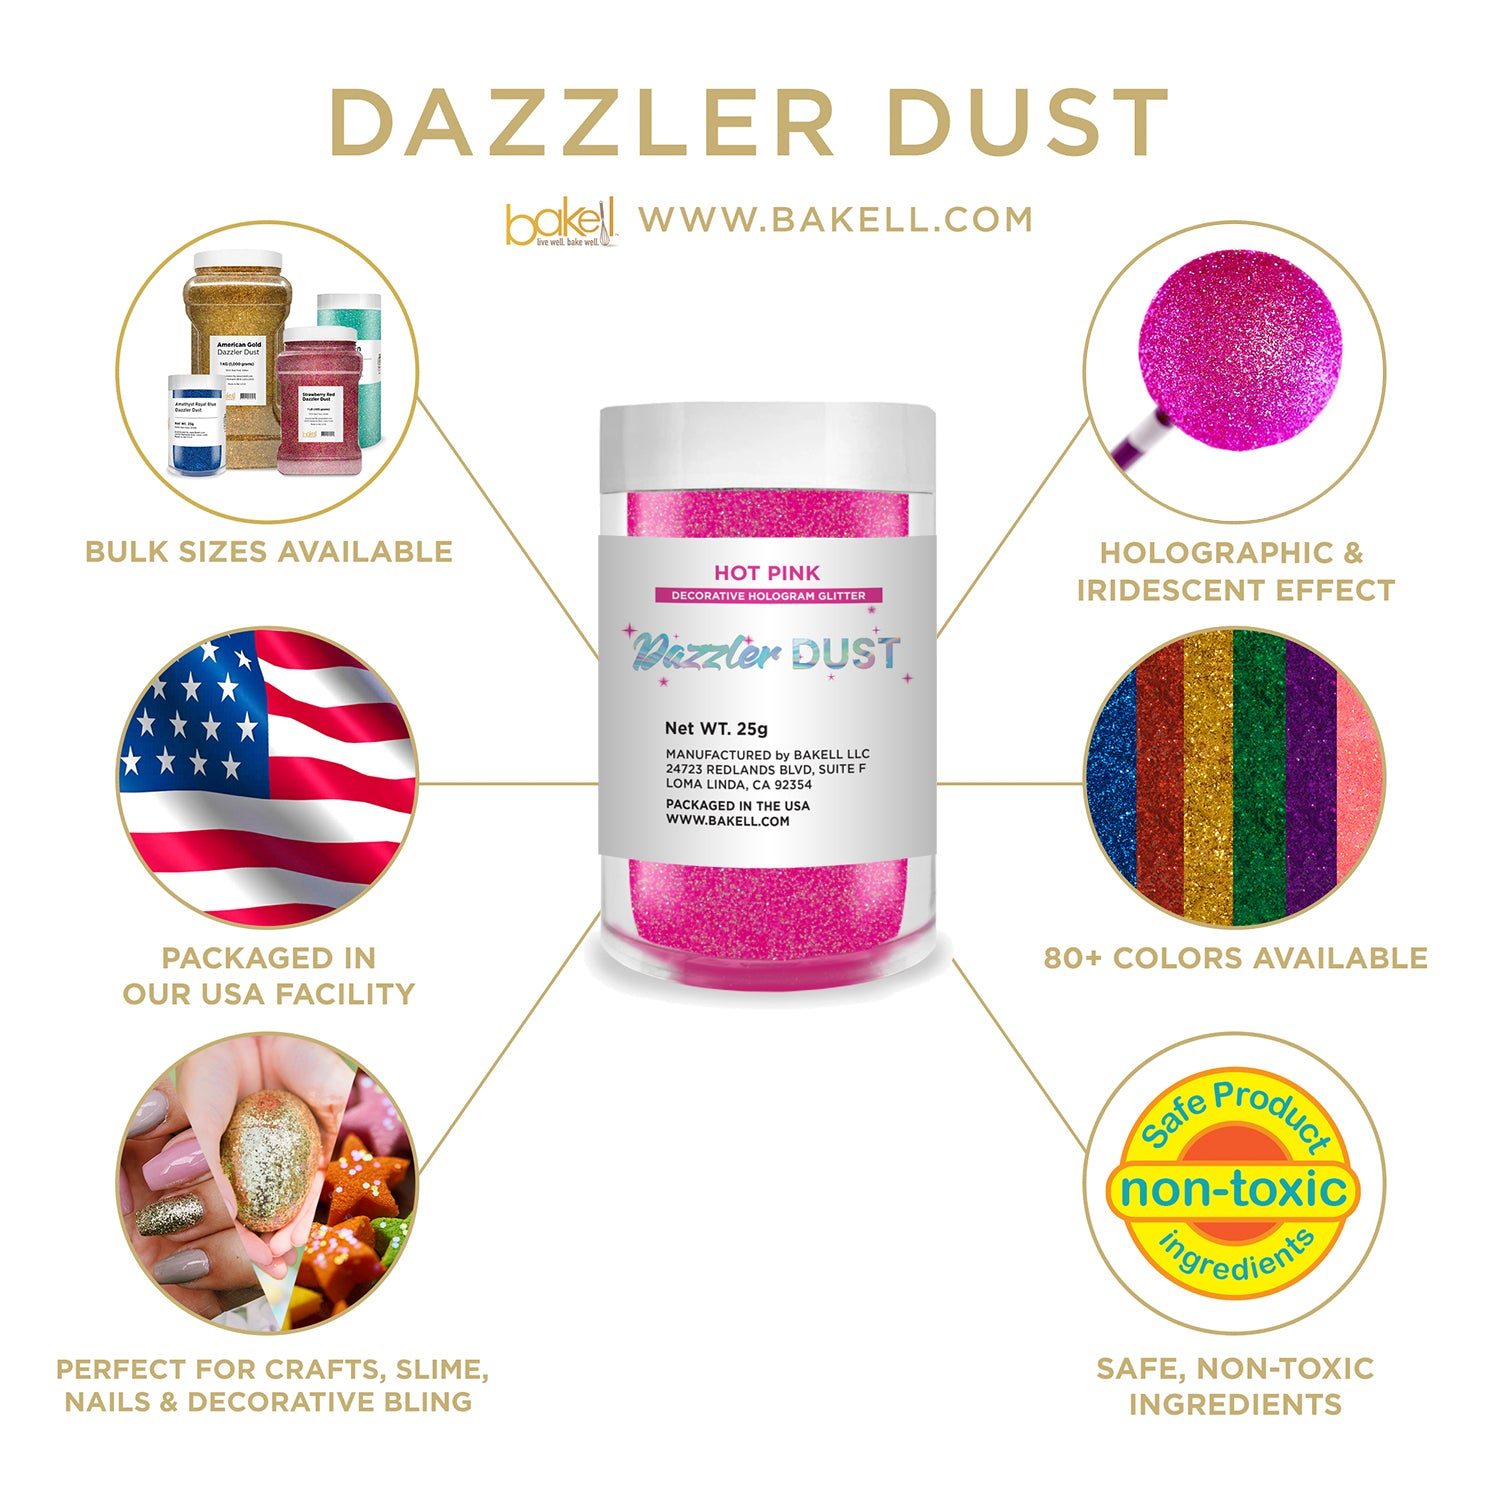 Dazzler Dust   Non Toxic Holographic Decorating & Craft Glitter   Bakell.com